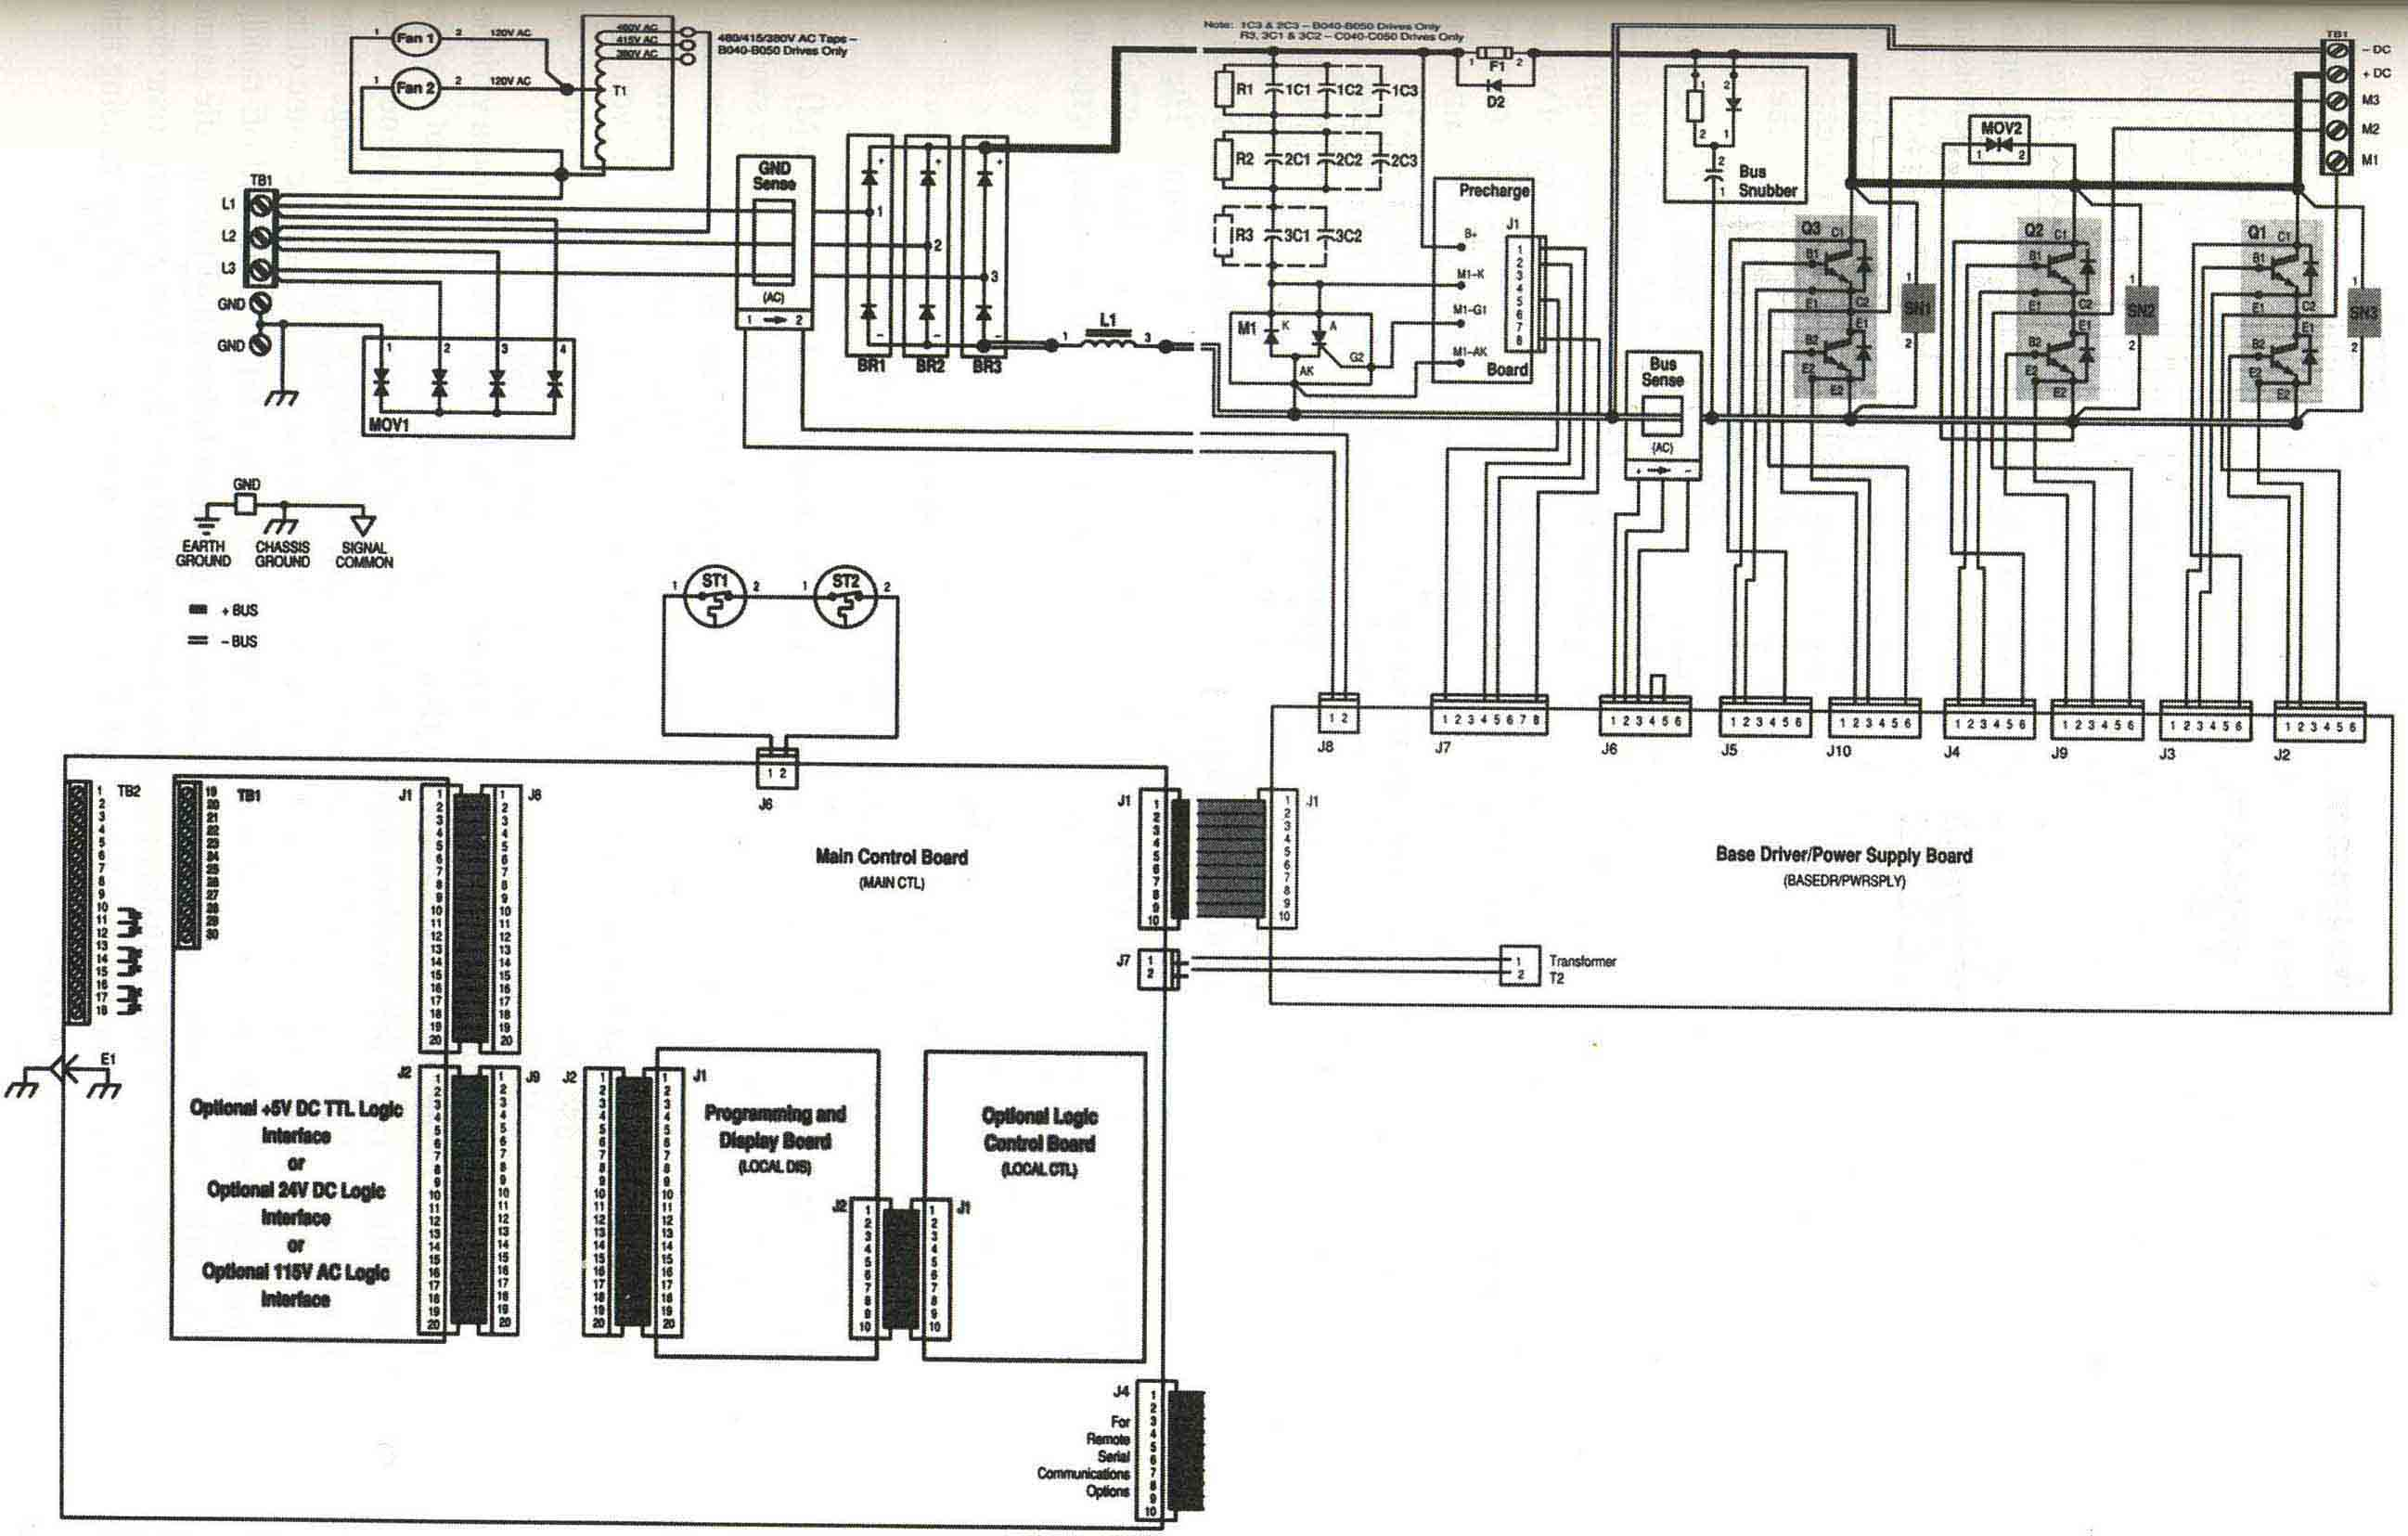 Allen Bradley 1336 schematic solid state circuits for variable frequency drives vfd control wiring diagram at gsmx.co